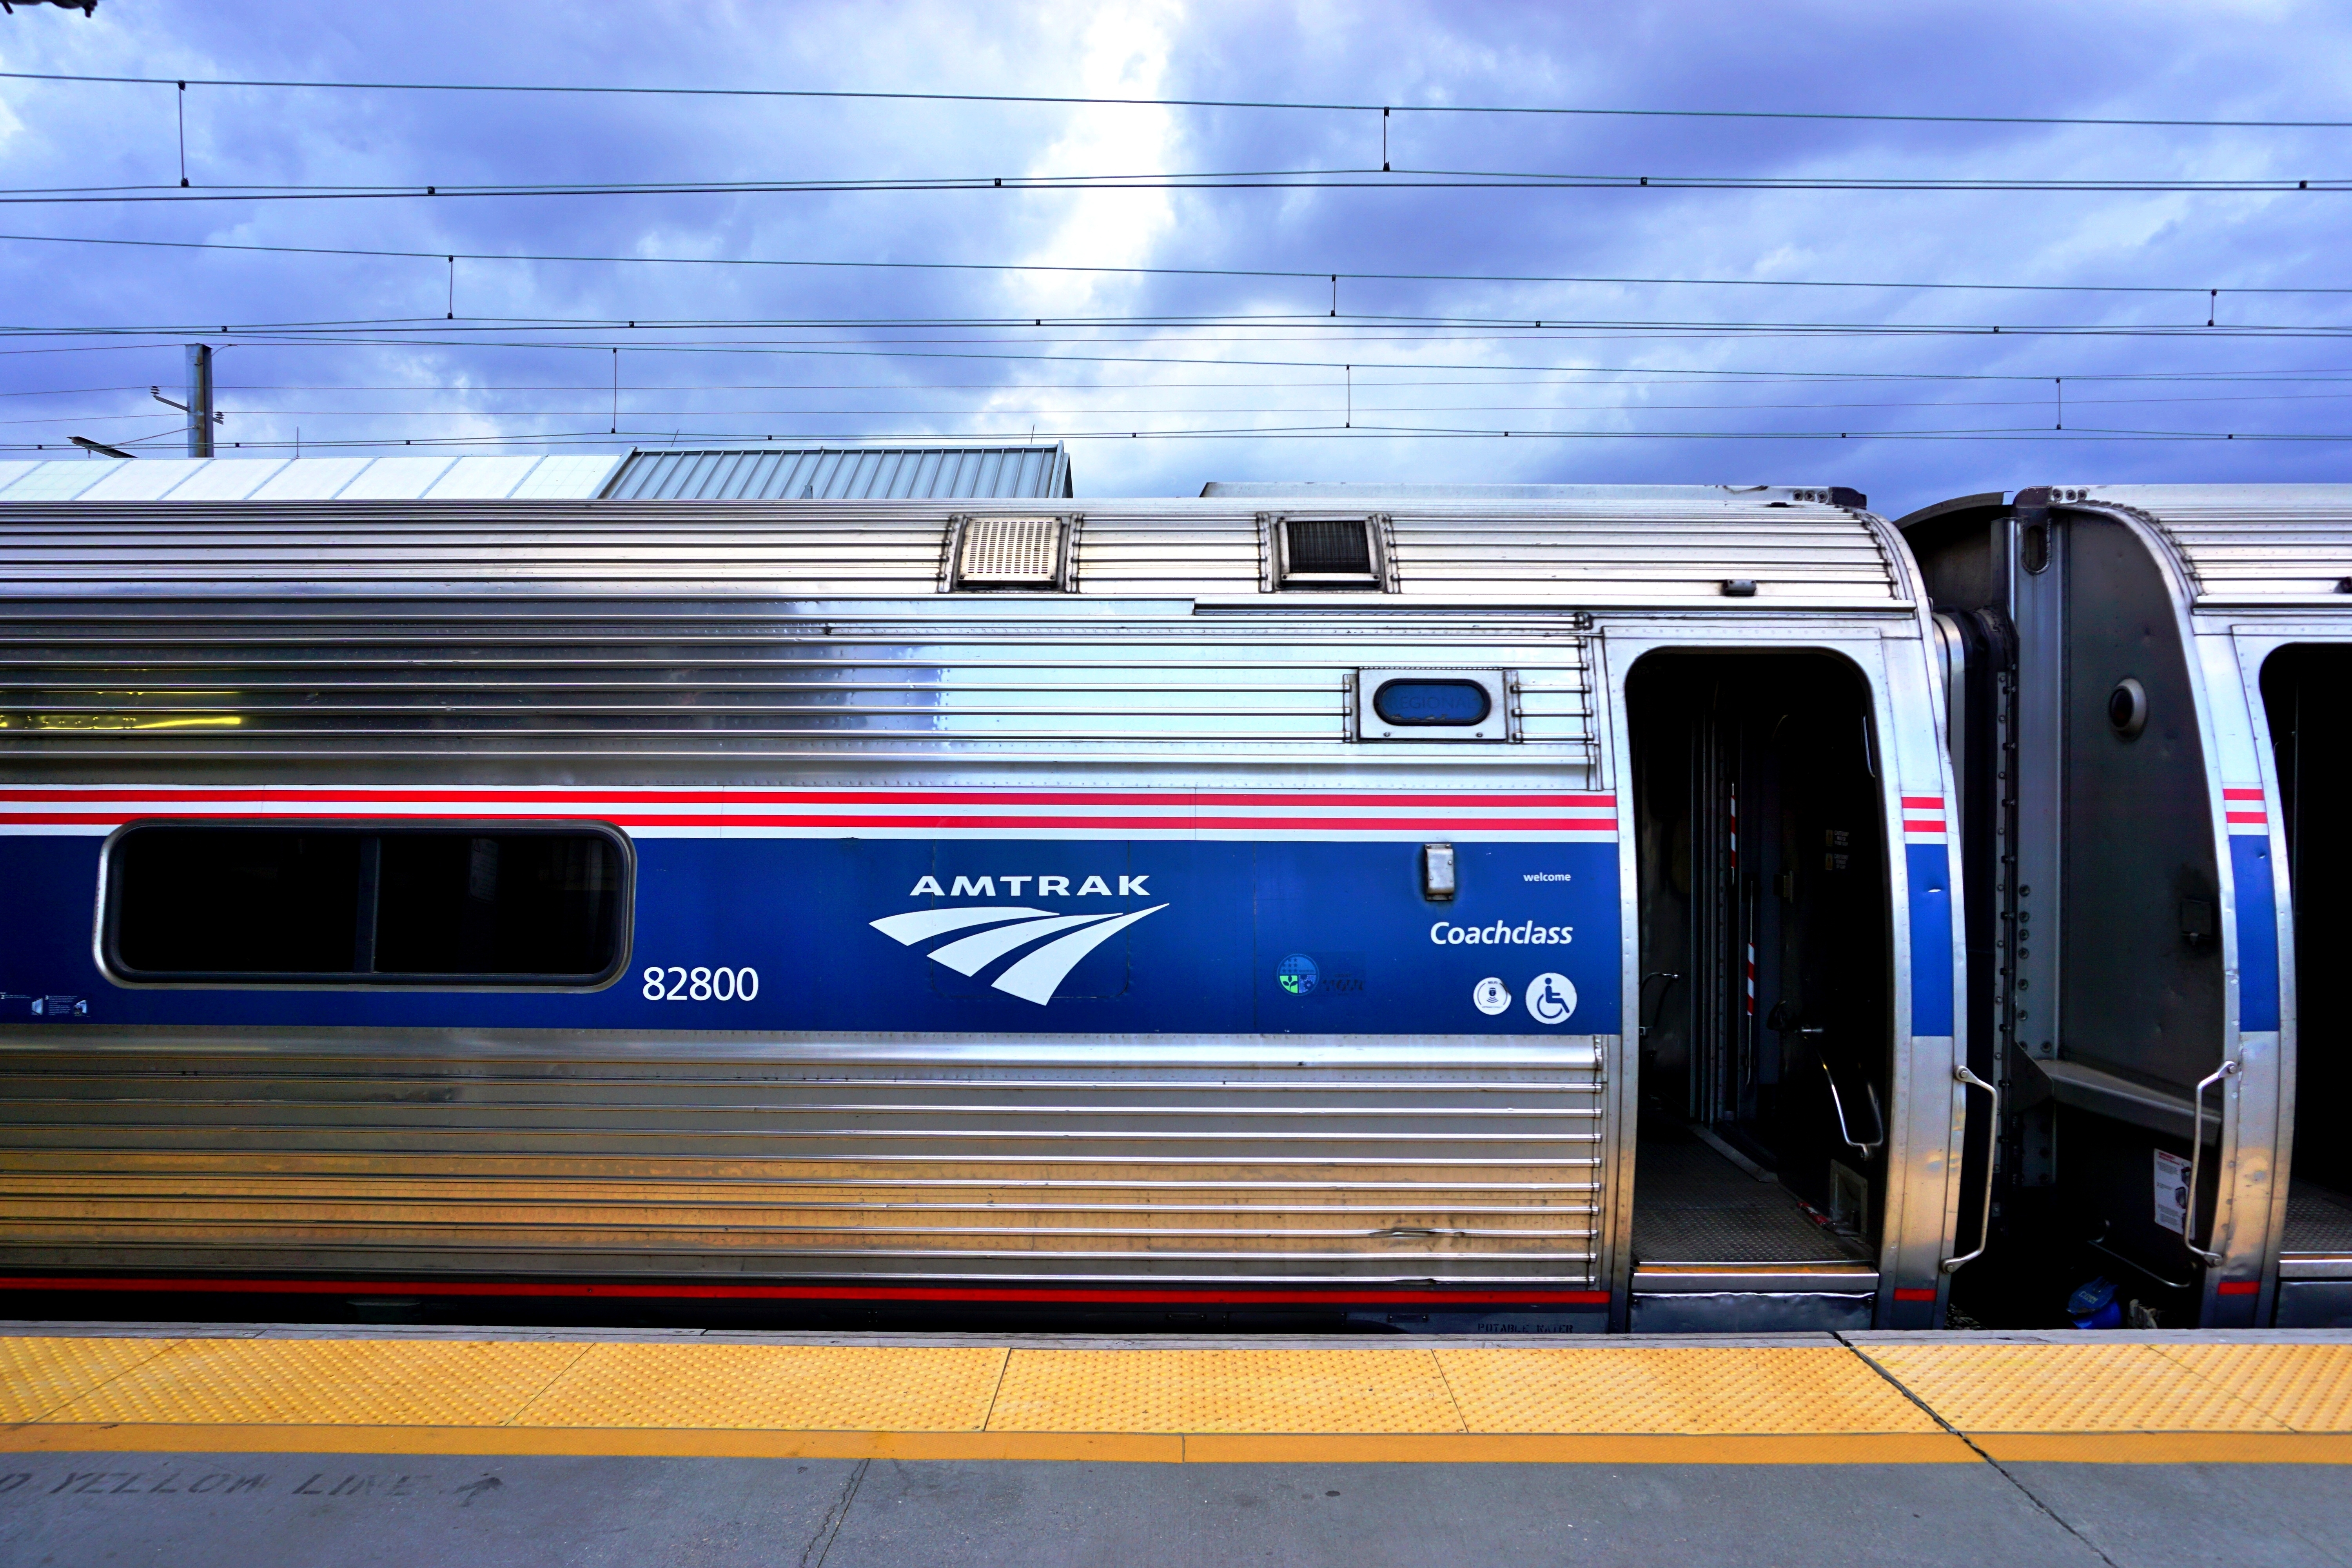 New York City-to-Berkshires Amtrak pilot could start in 2020, thanks to funding